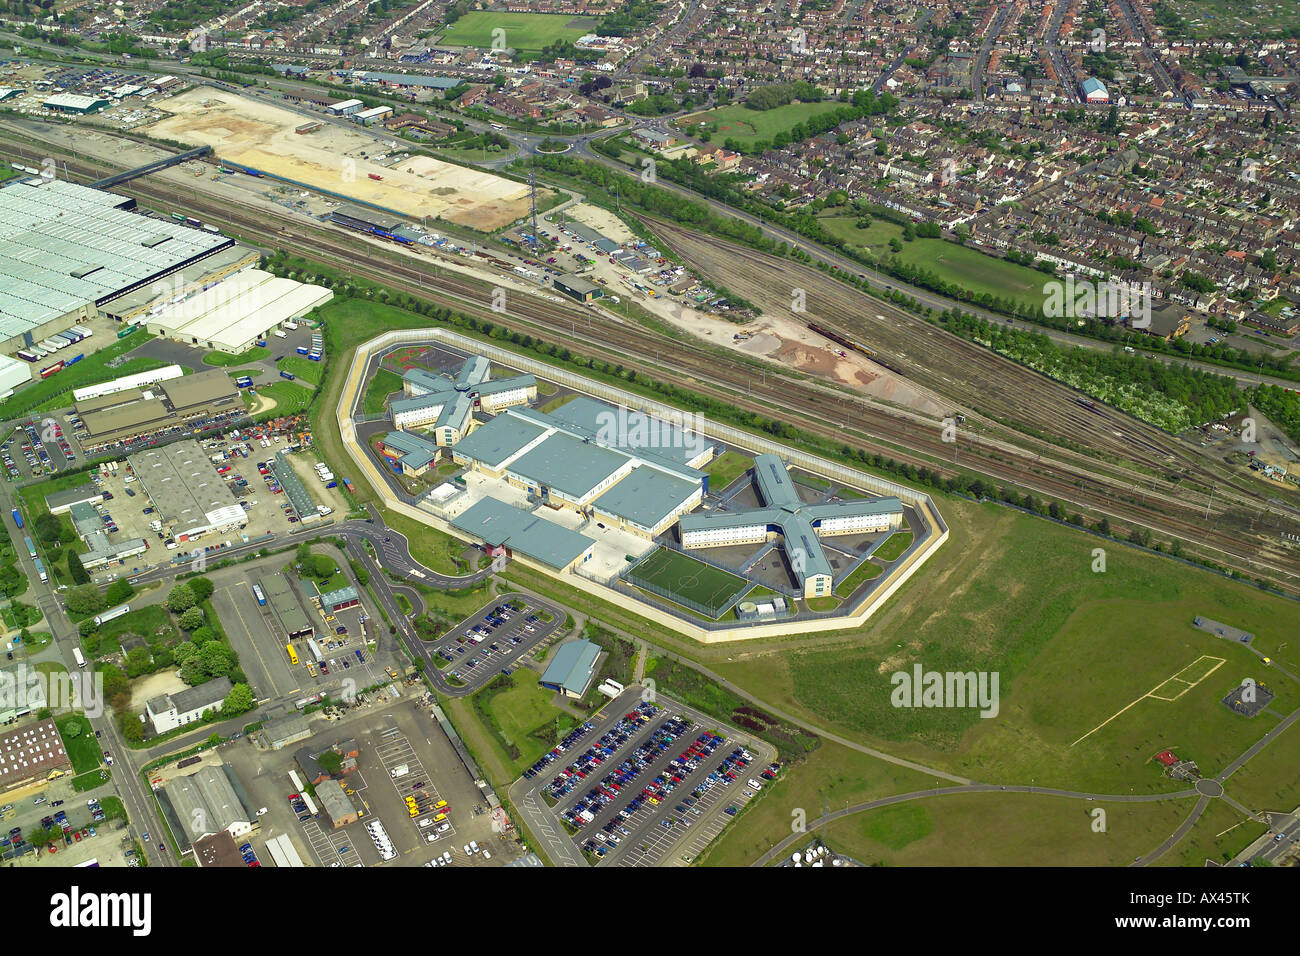 london helicopter centre with Stock Photo Aerial View Of Peterborough Prison Showing Its Proximity To Local 16723122 on Taxis Australian Airports Expensive World in addition Agustawestland Aw139 Helicopter likewise Canadian Kids Get A D Minus In Annual Report Card On Physical Activity as well London Olympics 2012 Images Houses Parliament Bathed Morning Sun besides Photo Feature Views Of Londons Skyscrapers From Brixton Hill.